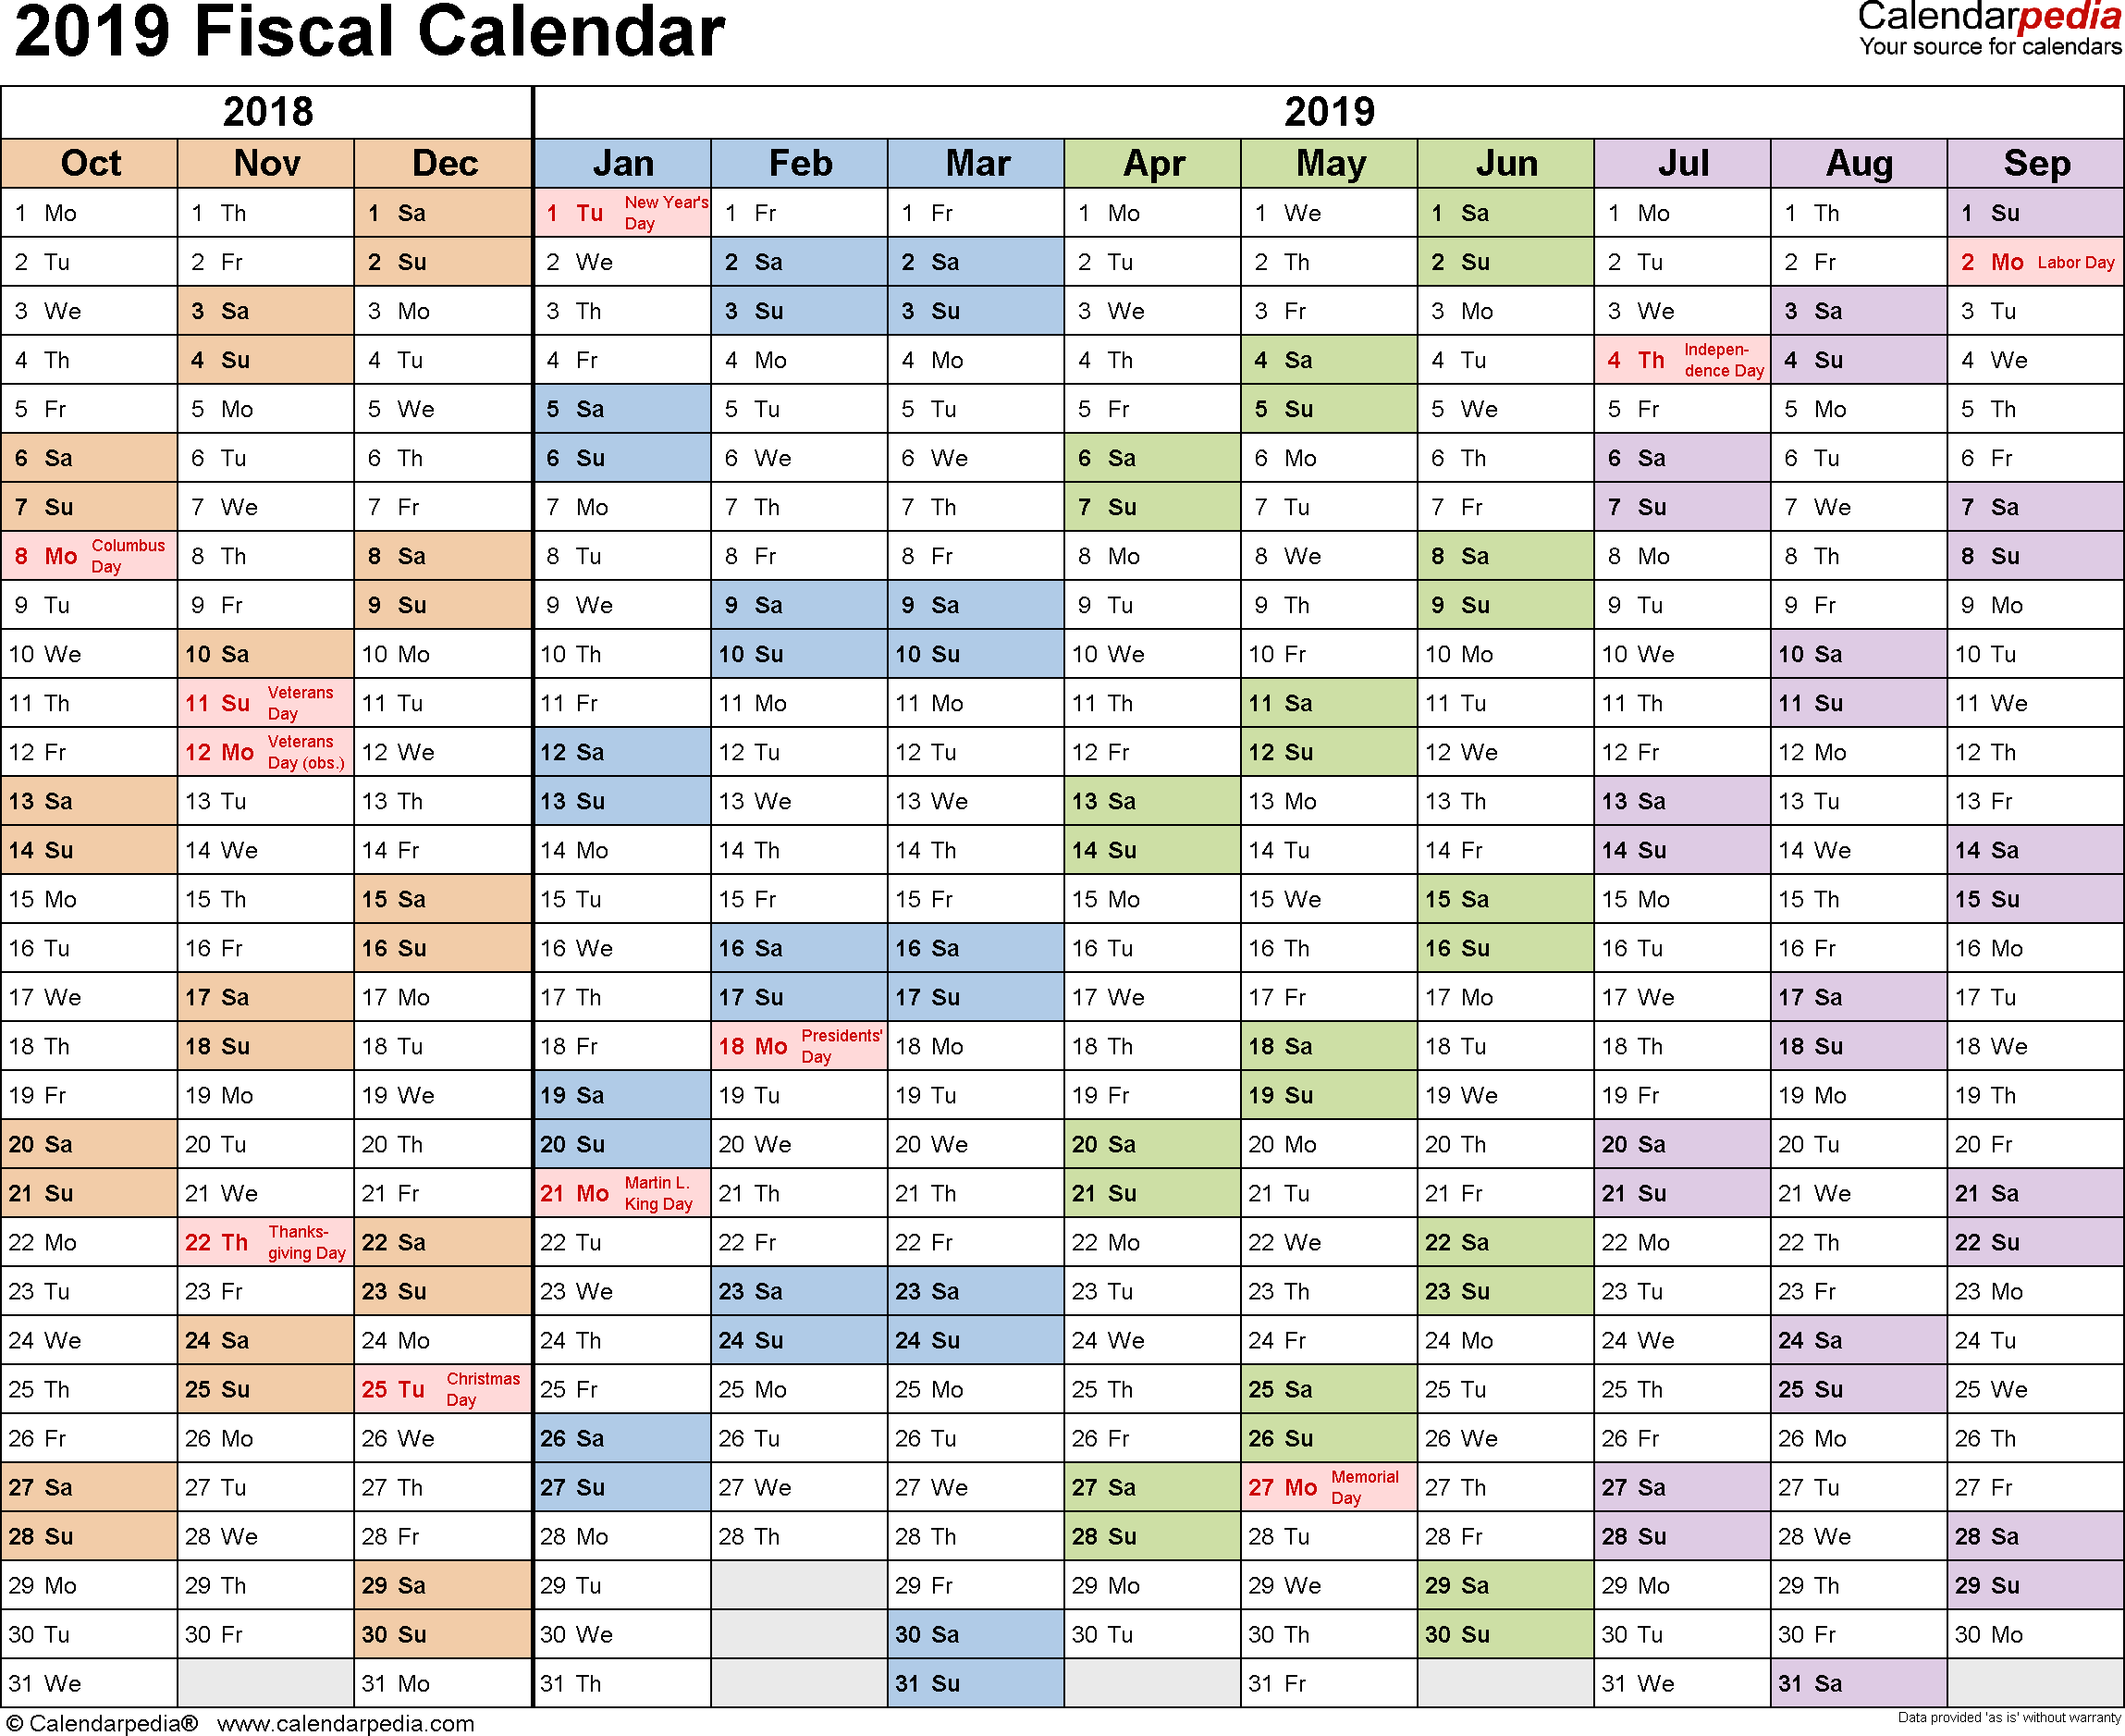 Calendar 2019 Entire Year With Fiscal Calendars As Free Printable Word Templates